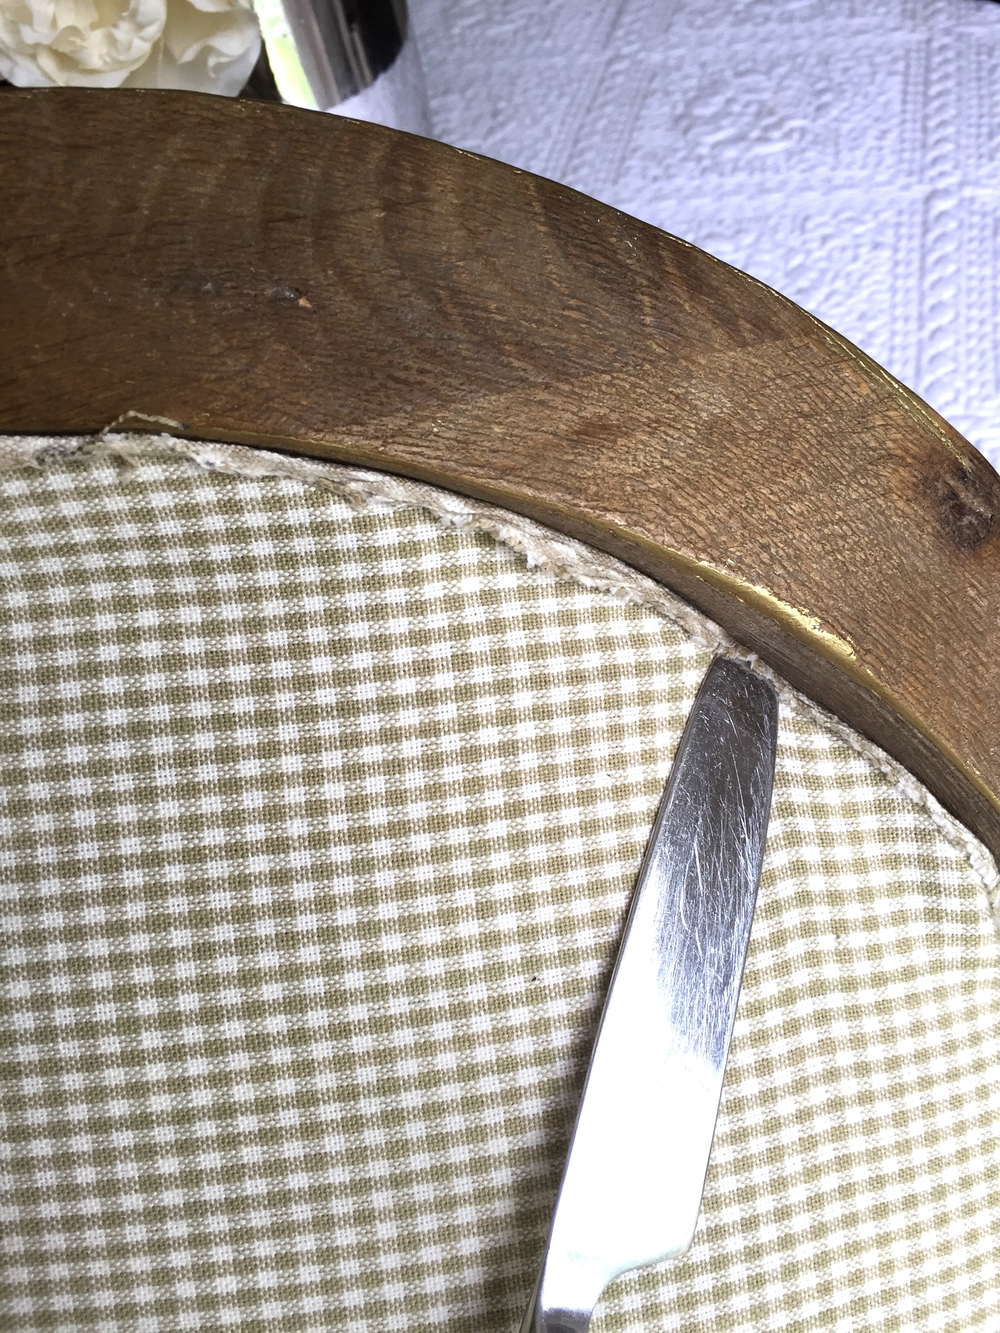 using a butter knife, tuck fabric into frame.